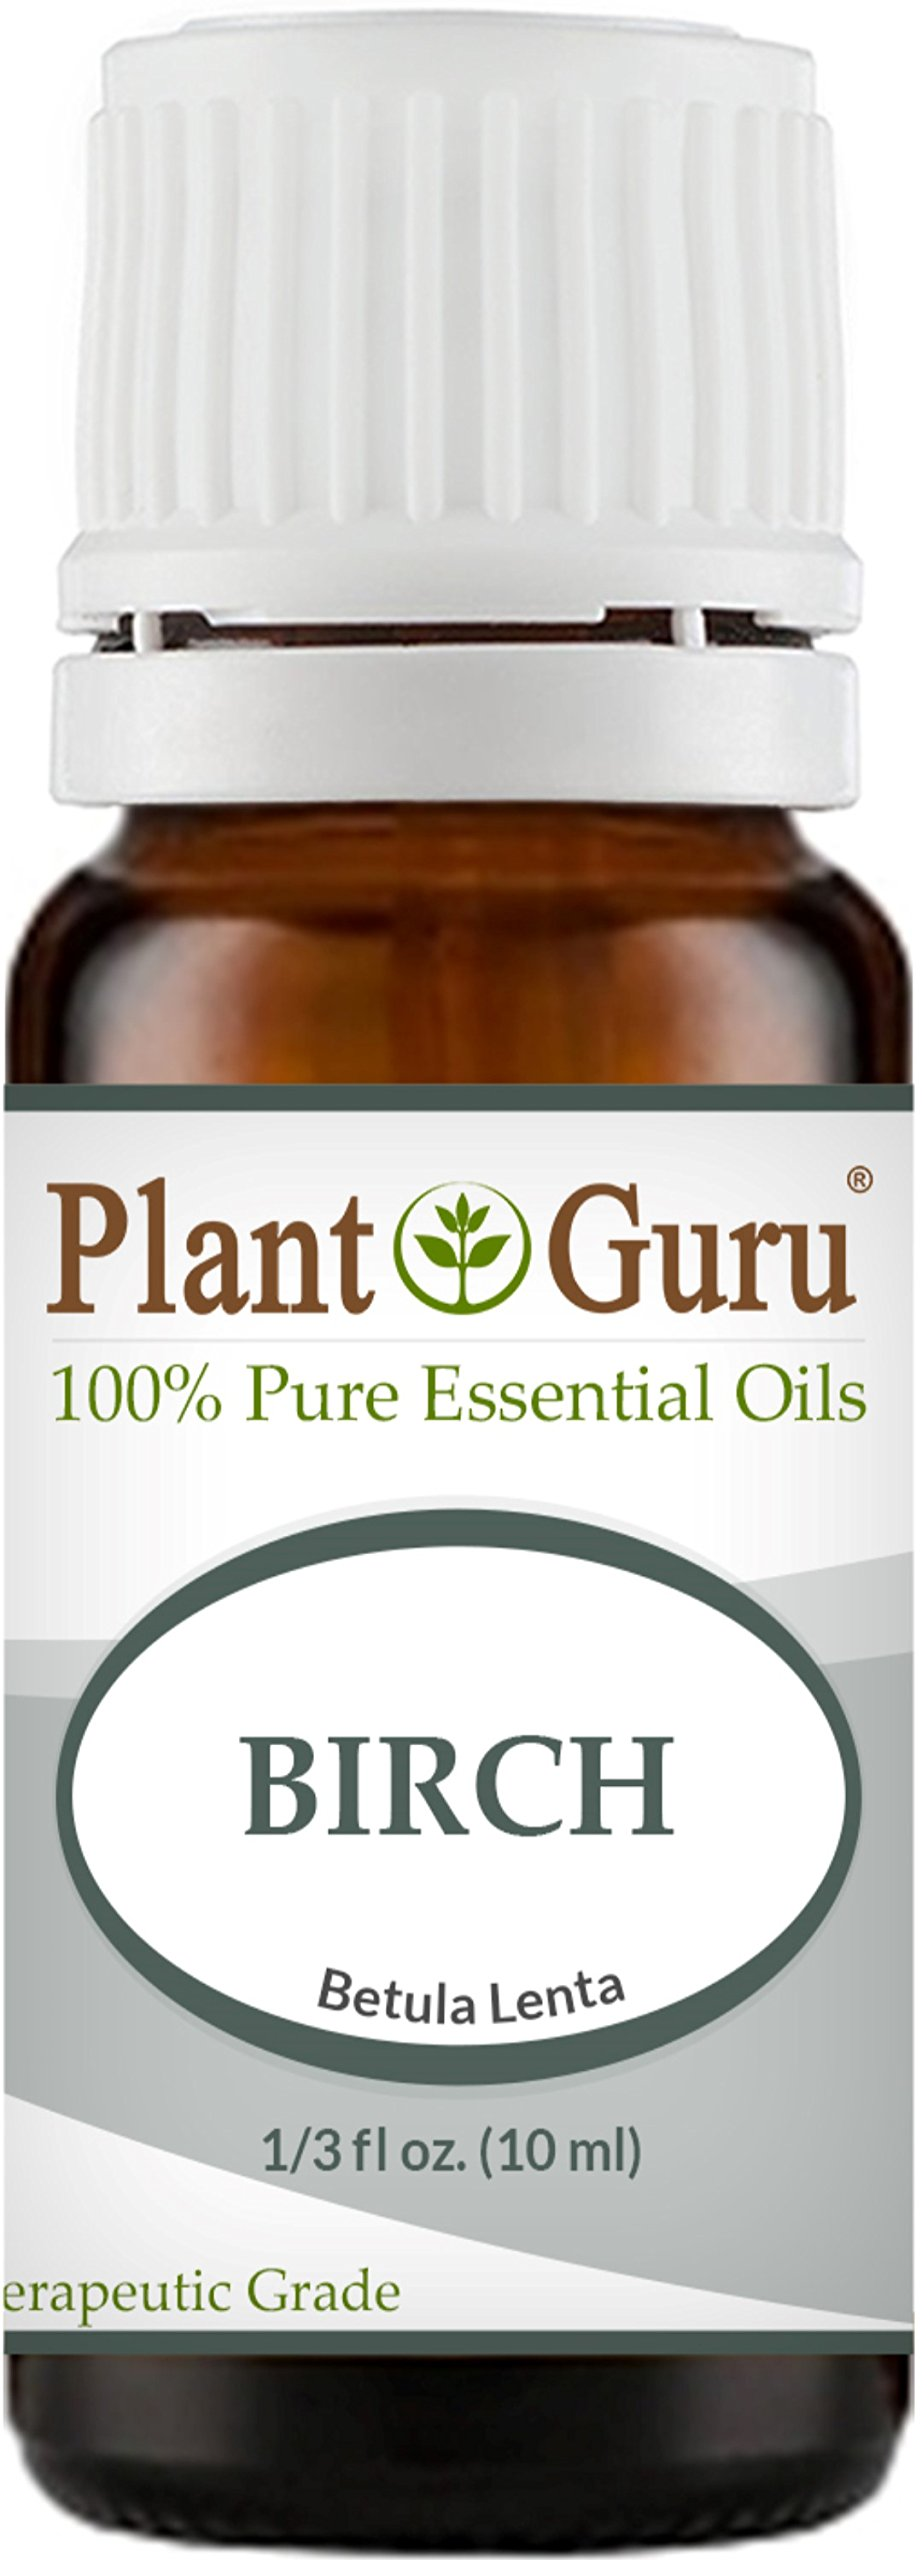 Birch (Sweet) Essential Oil 10 ml. 100% Pure Undiluted Therapeutic Grade.